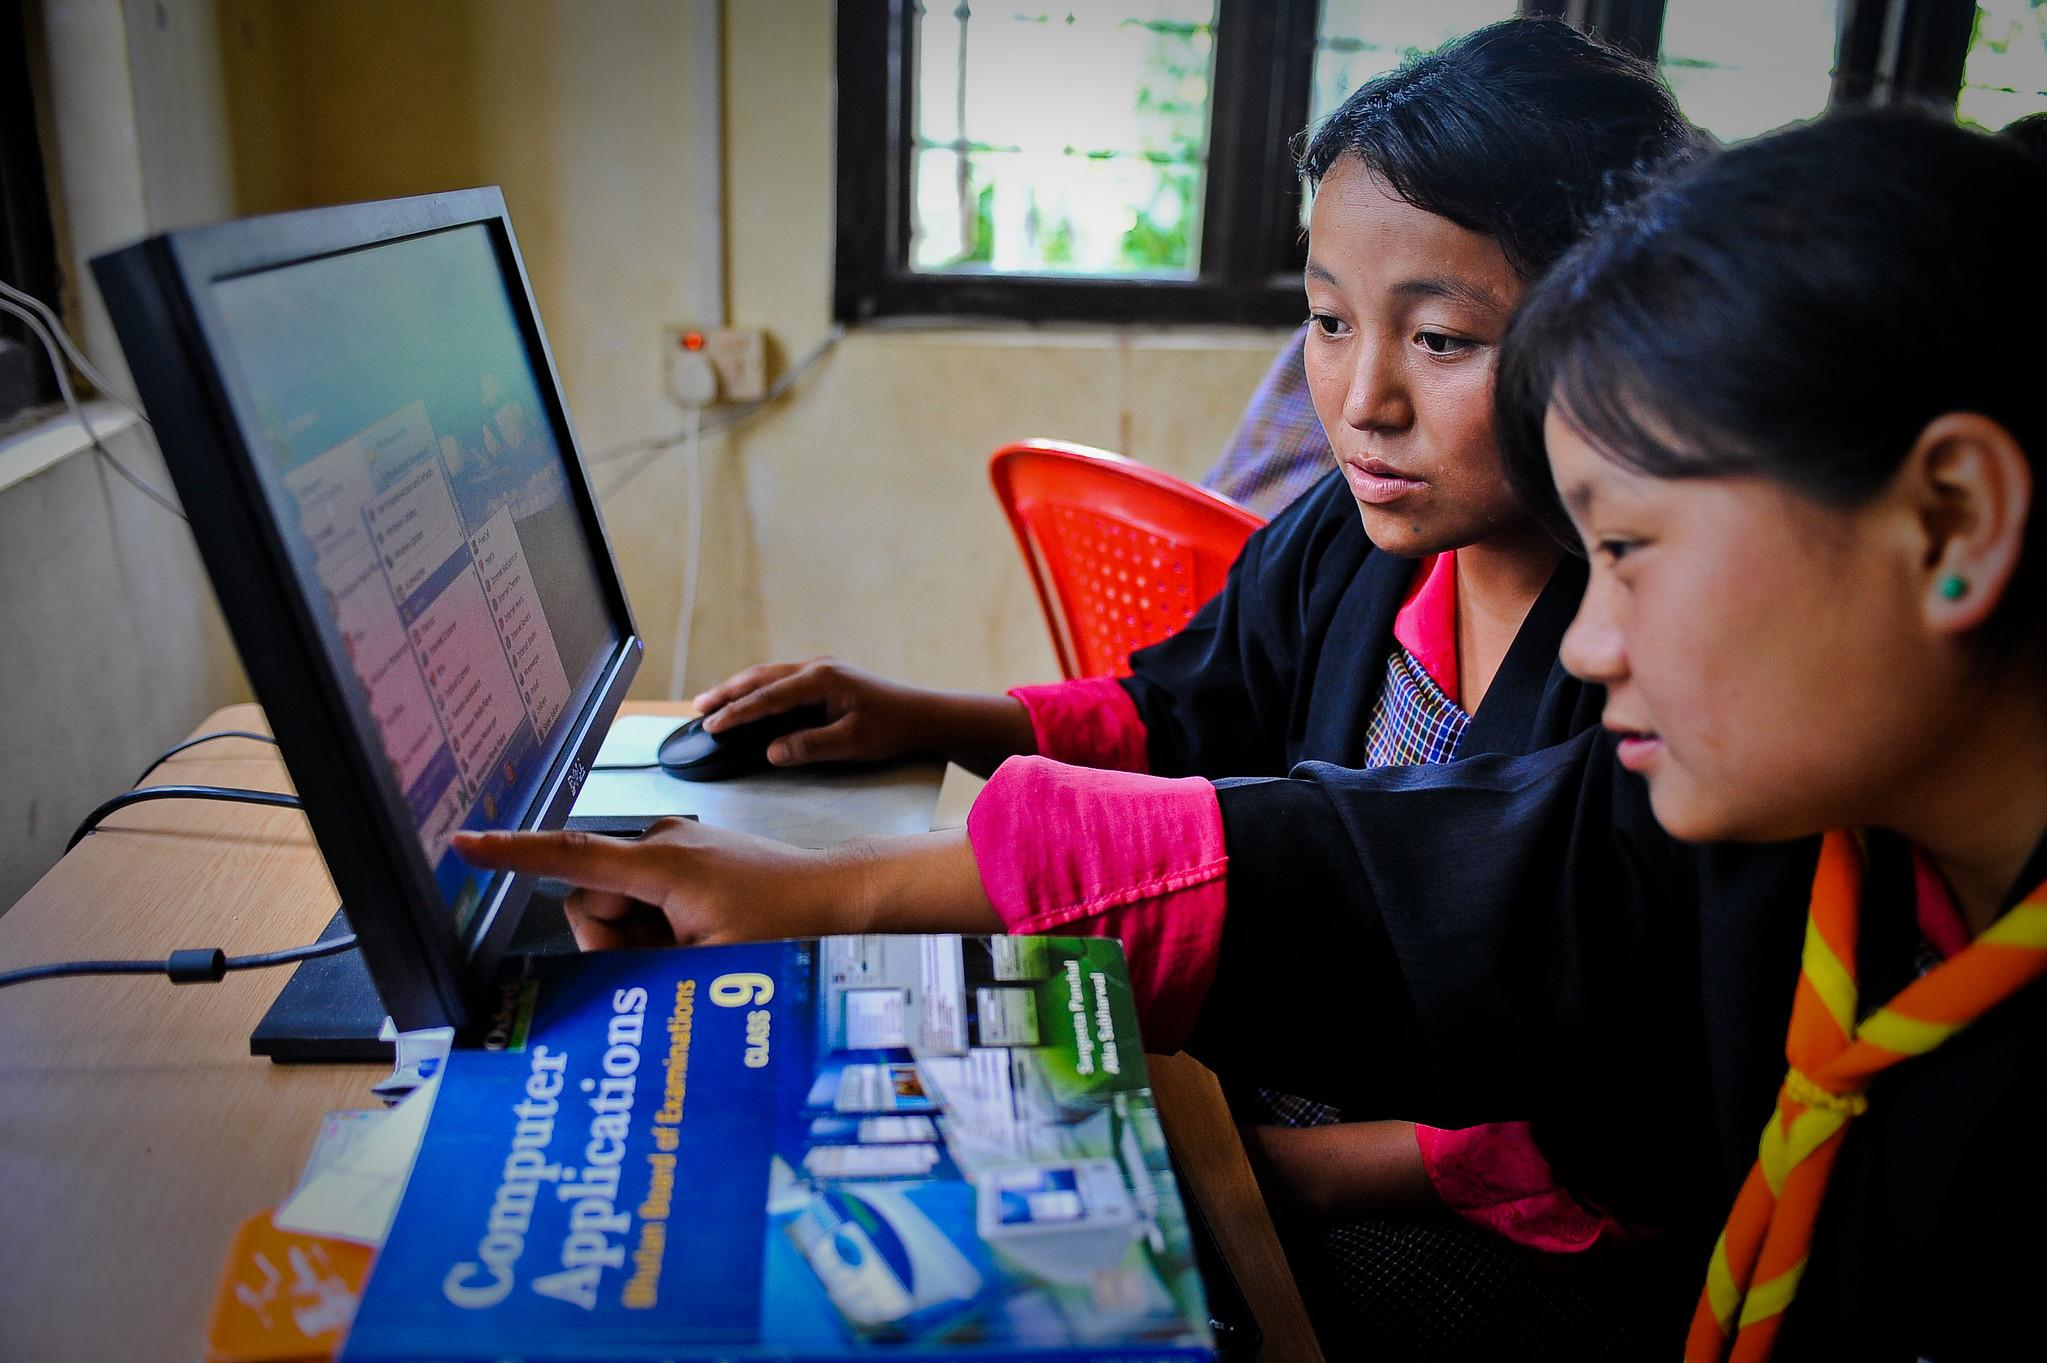 Students acquire computer skills and programming at the community e-Center in Bhutan.